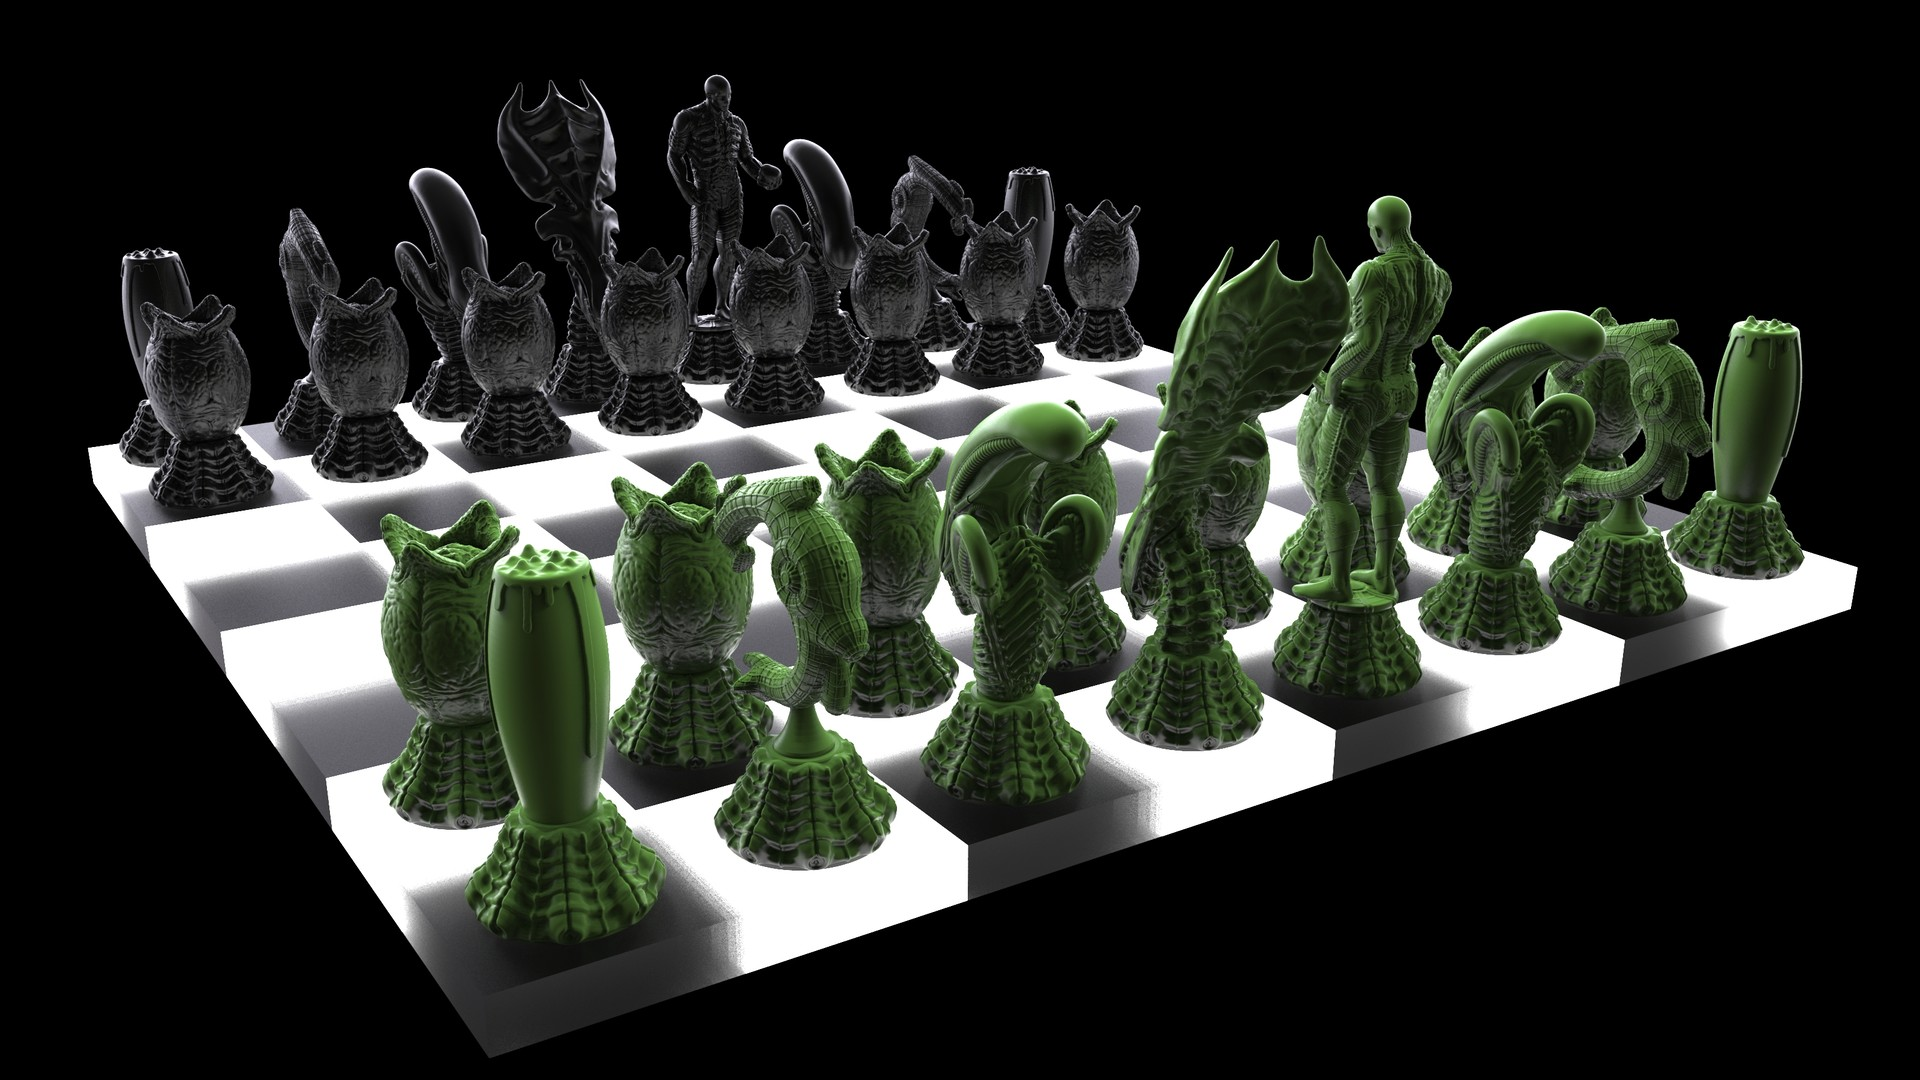 Ken calvert alien chess renders 1072